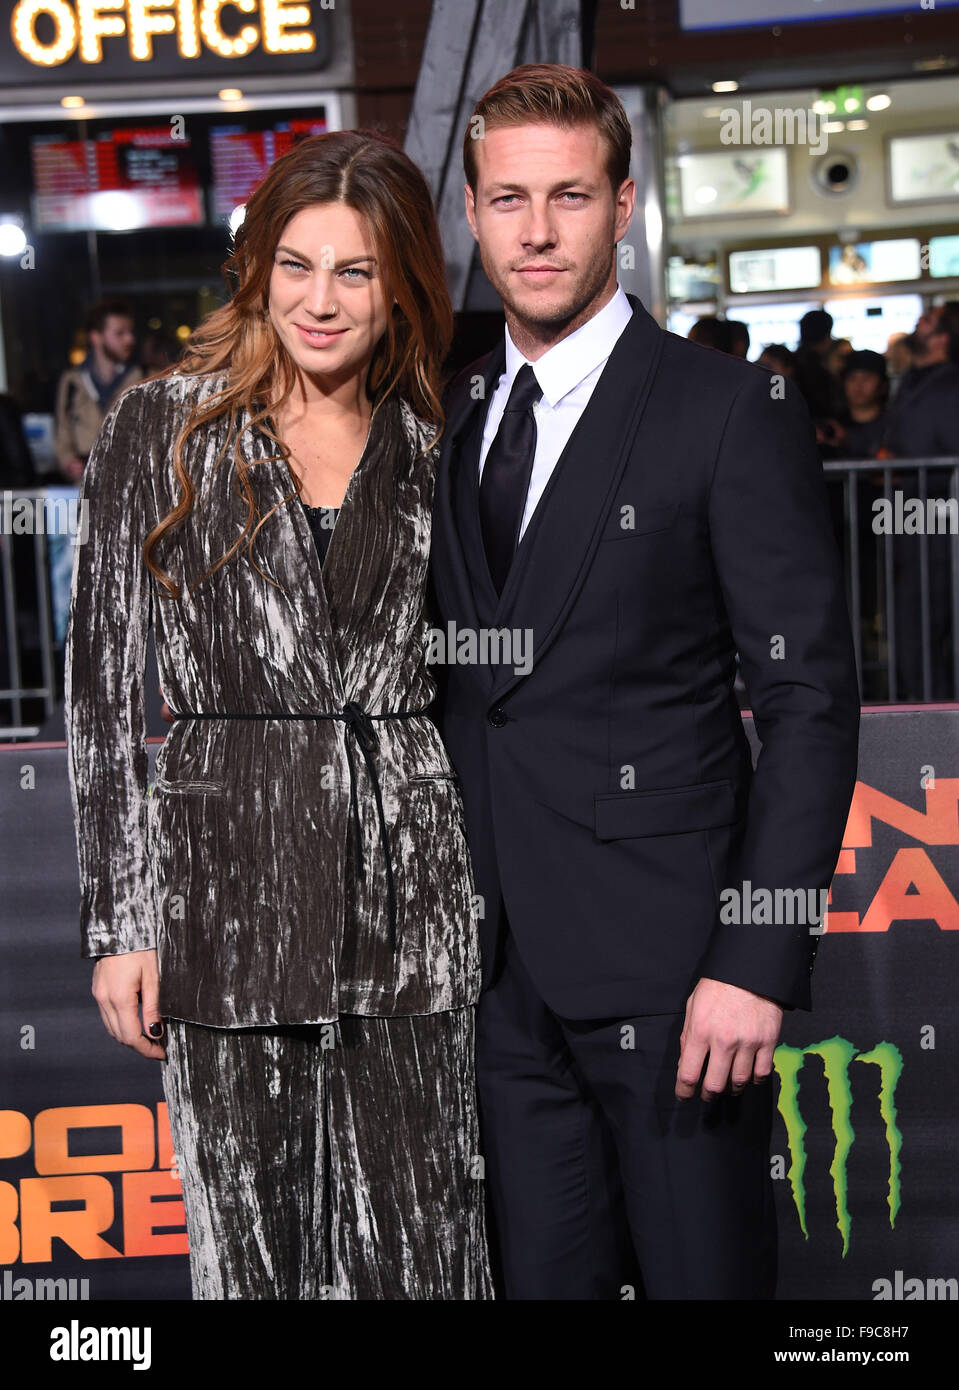 Luke Bracey High Resolution Stock Photography And Images Alamy